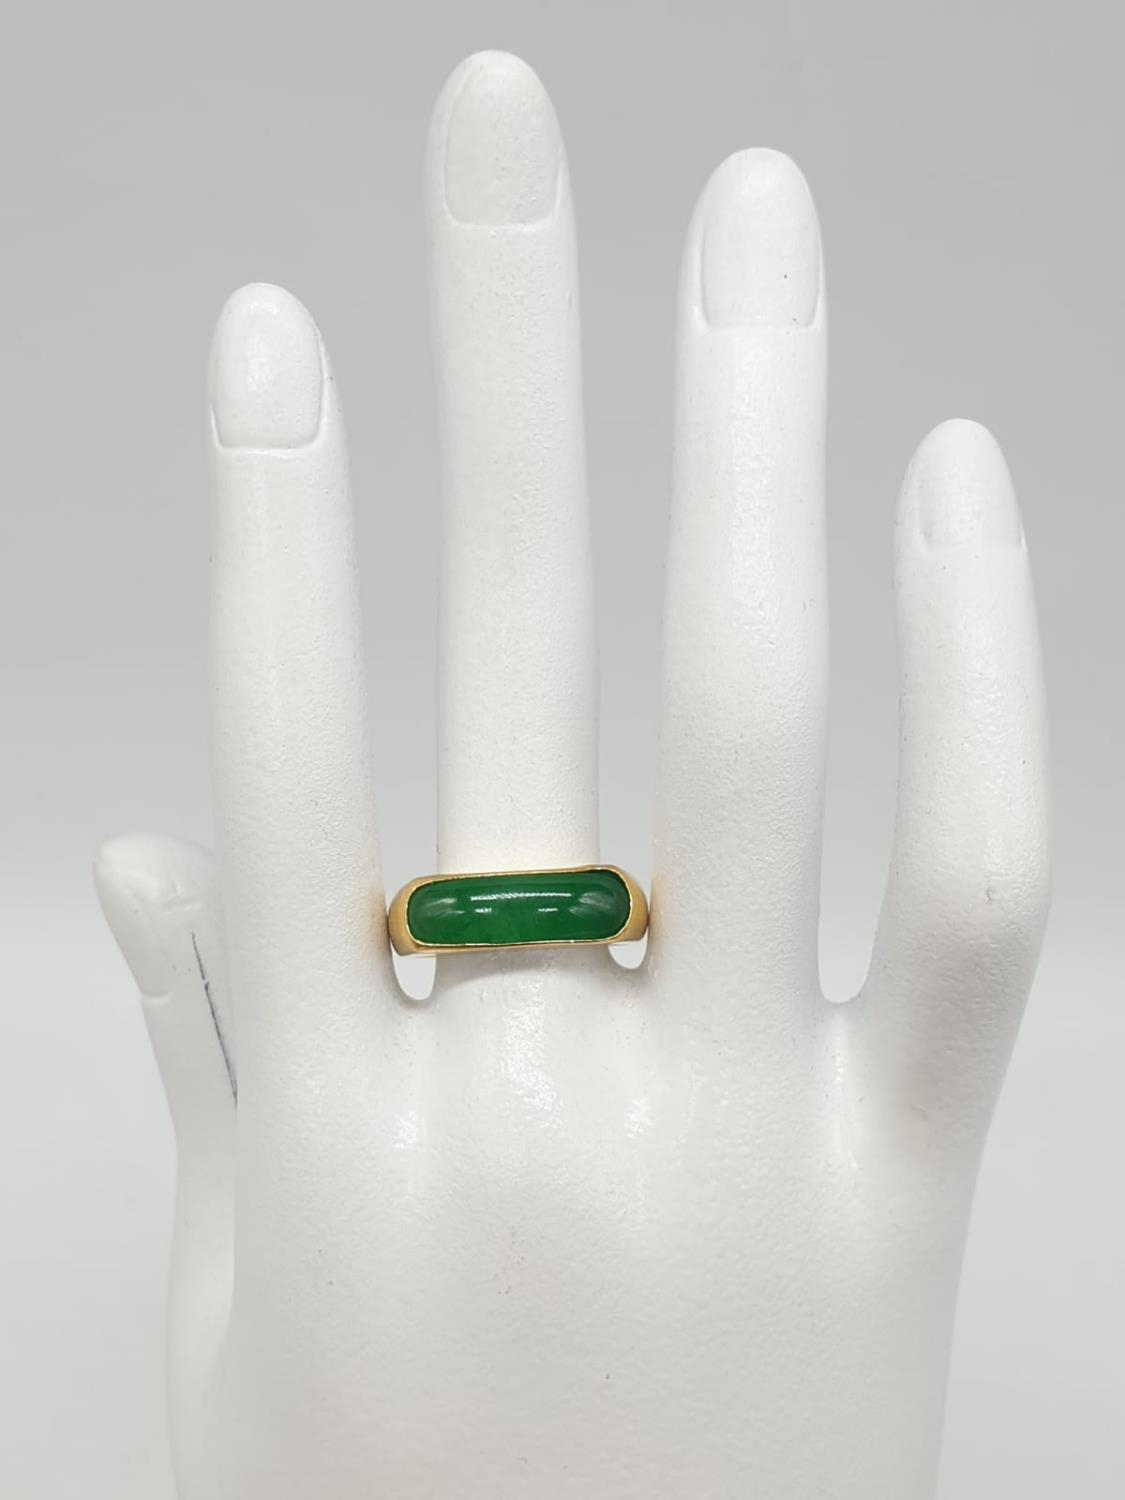 22ct gold ring with natural jade stone. 7.7g in weight and size T. - Image 6 of 7